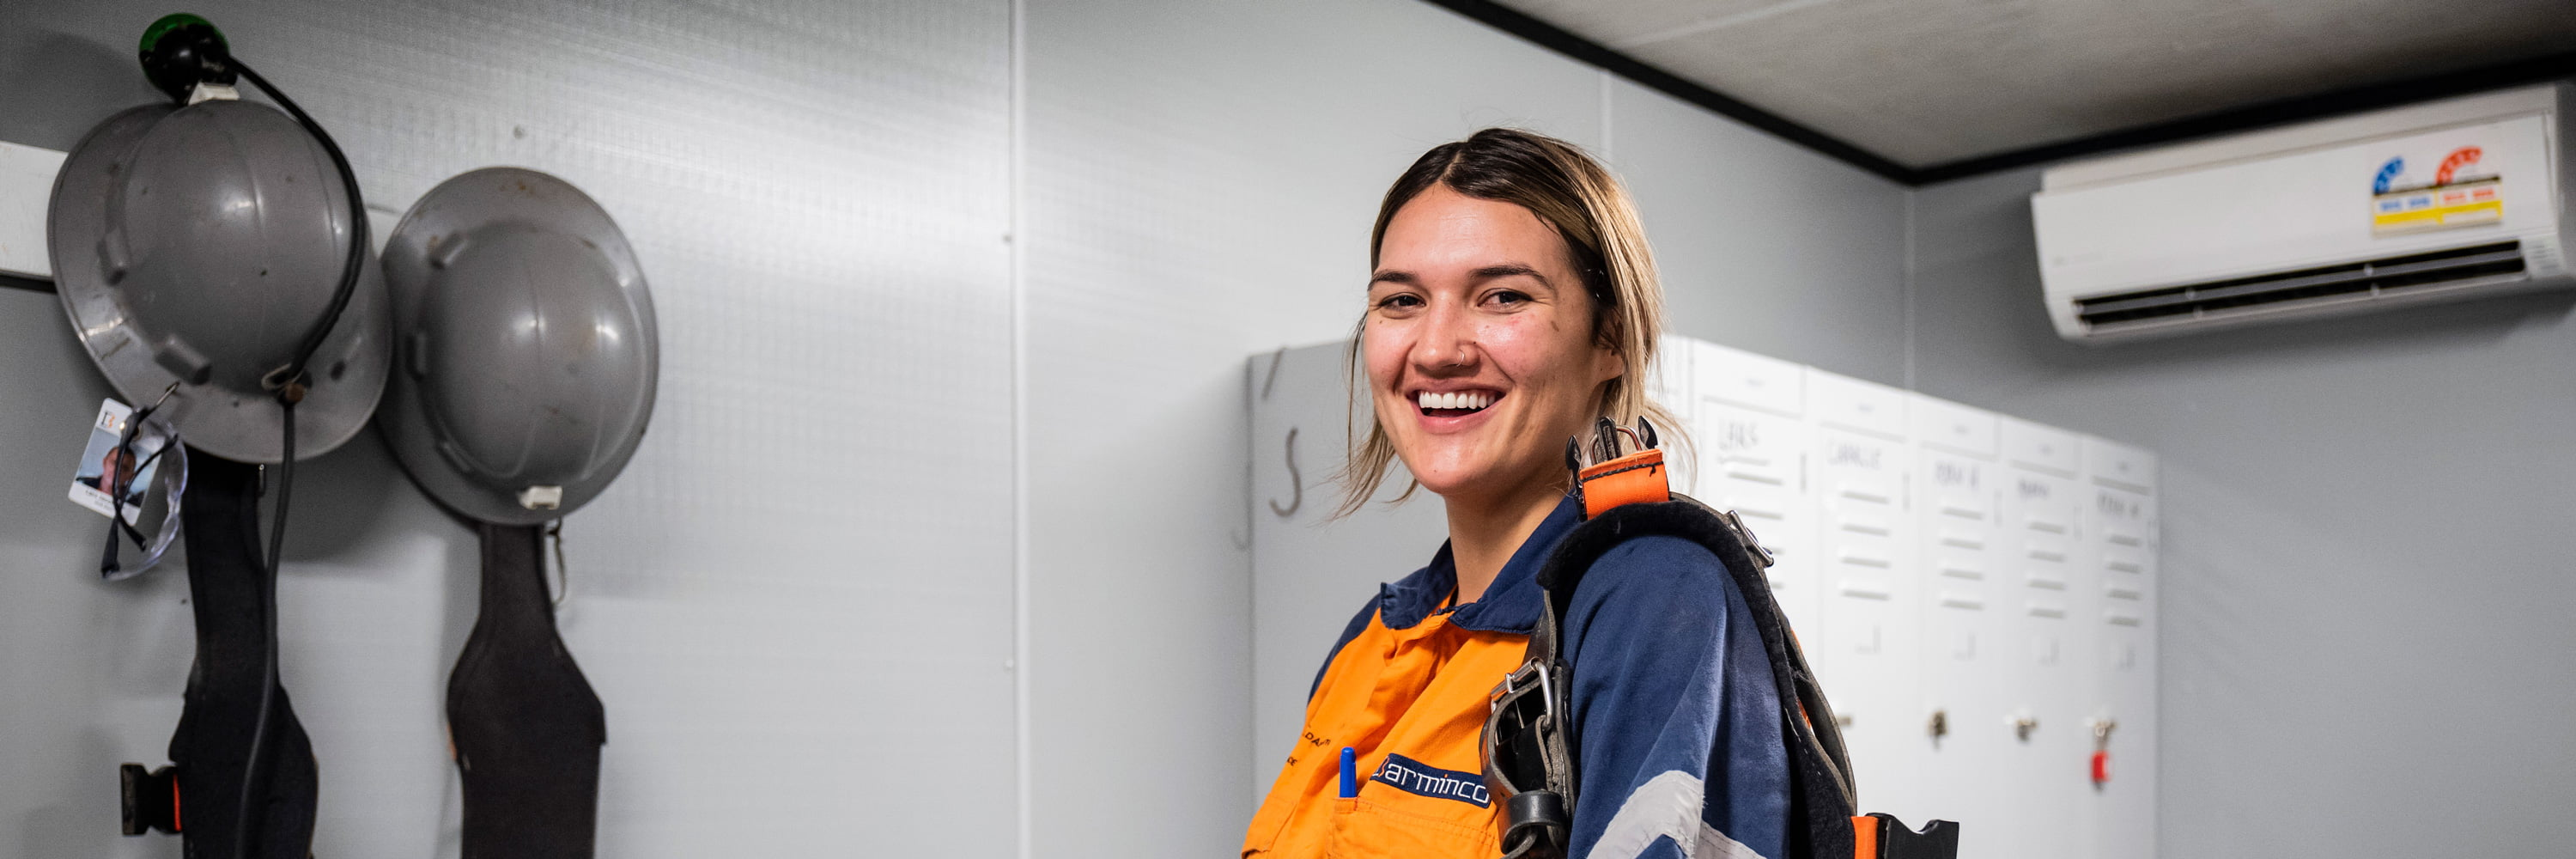 Ausdrill celebrates success with their new employees • careers